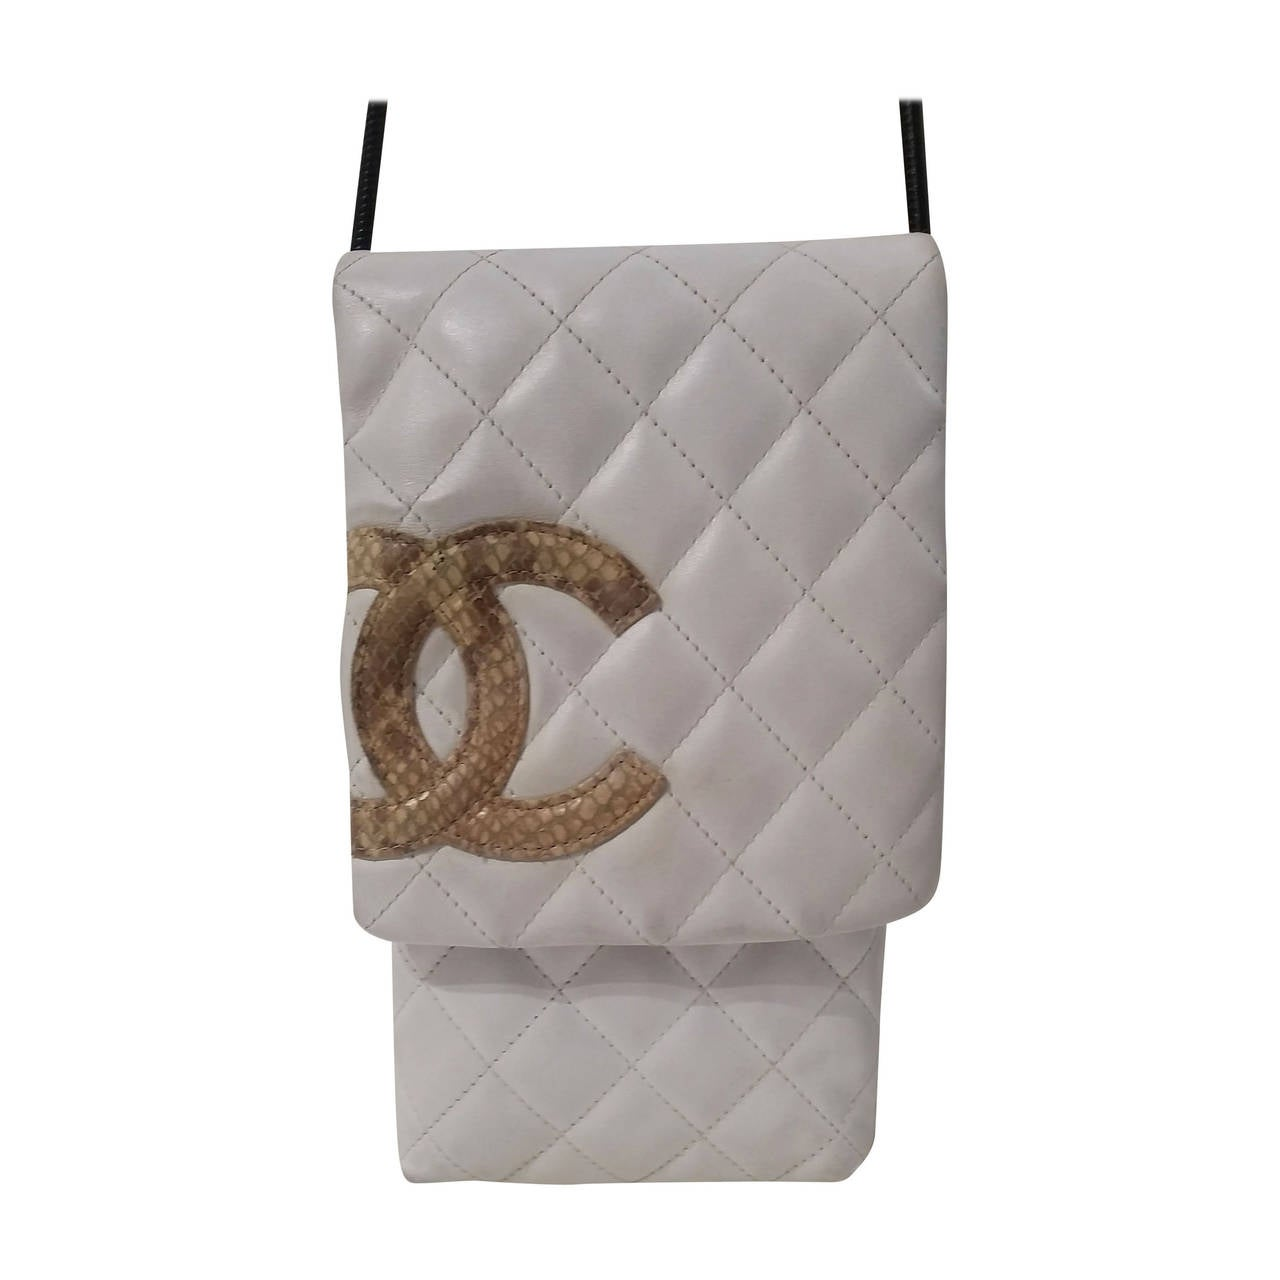 2004 Chanel white cambon shoulder bag with CC Python skin